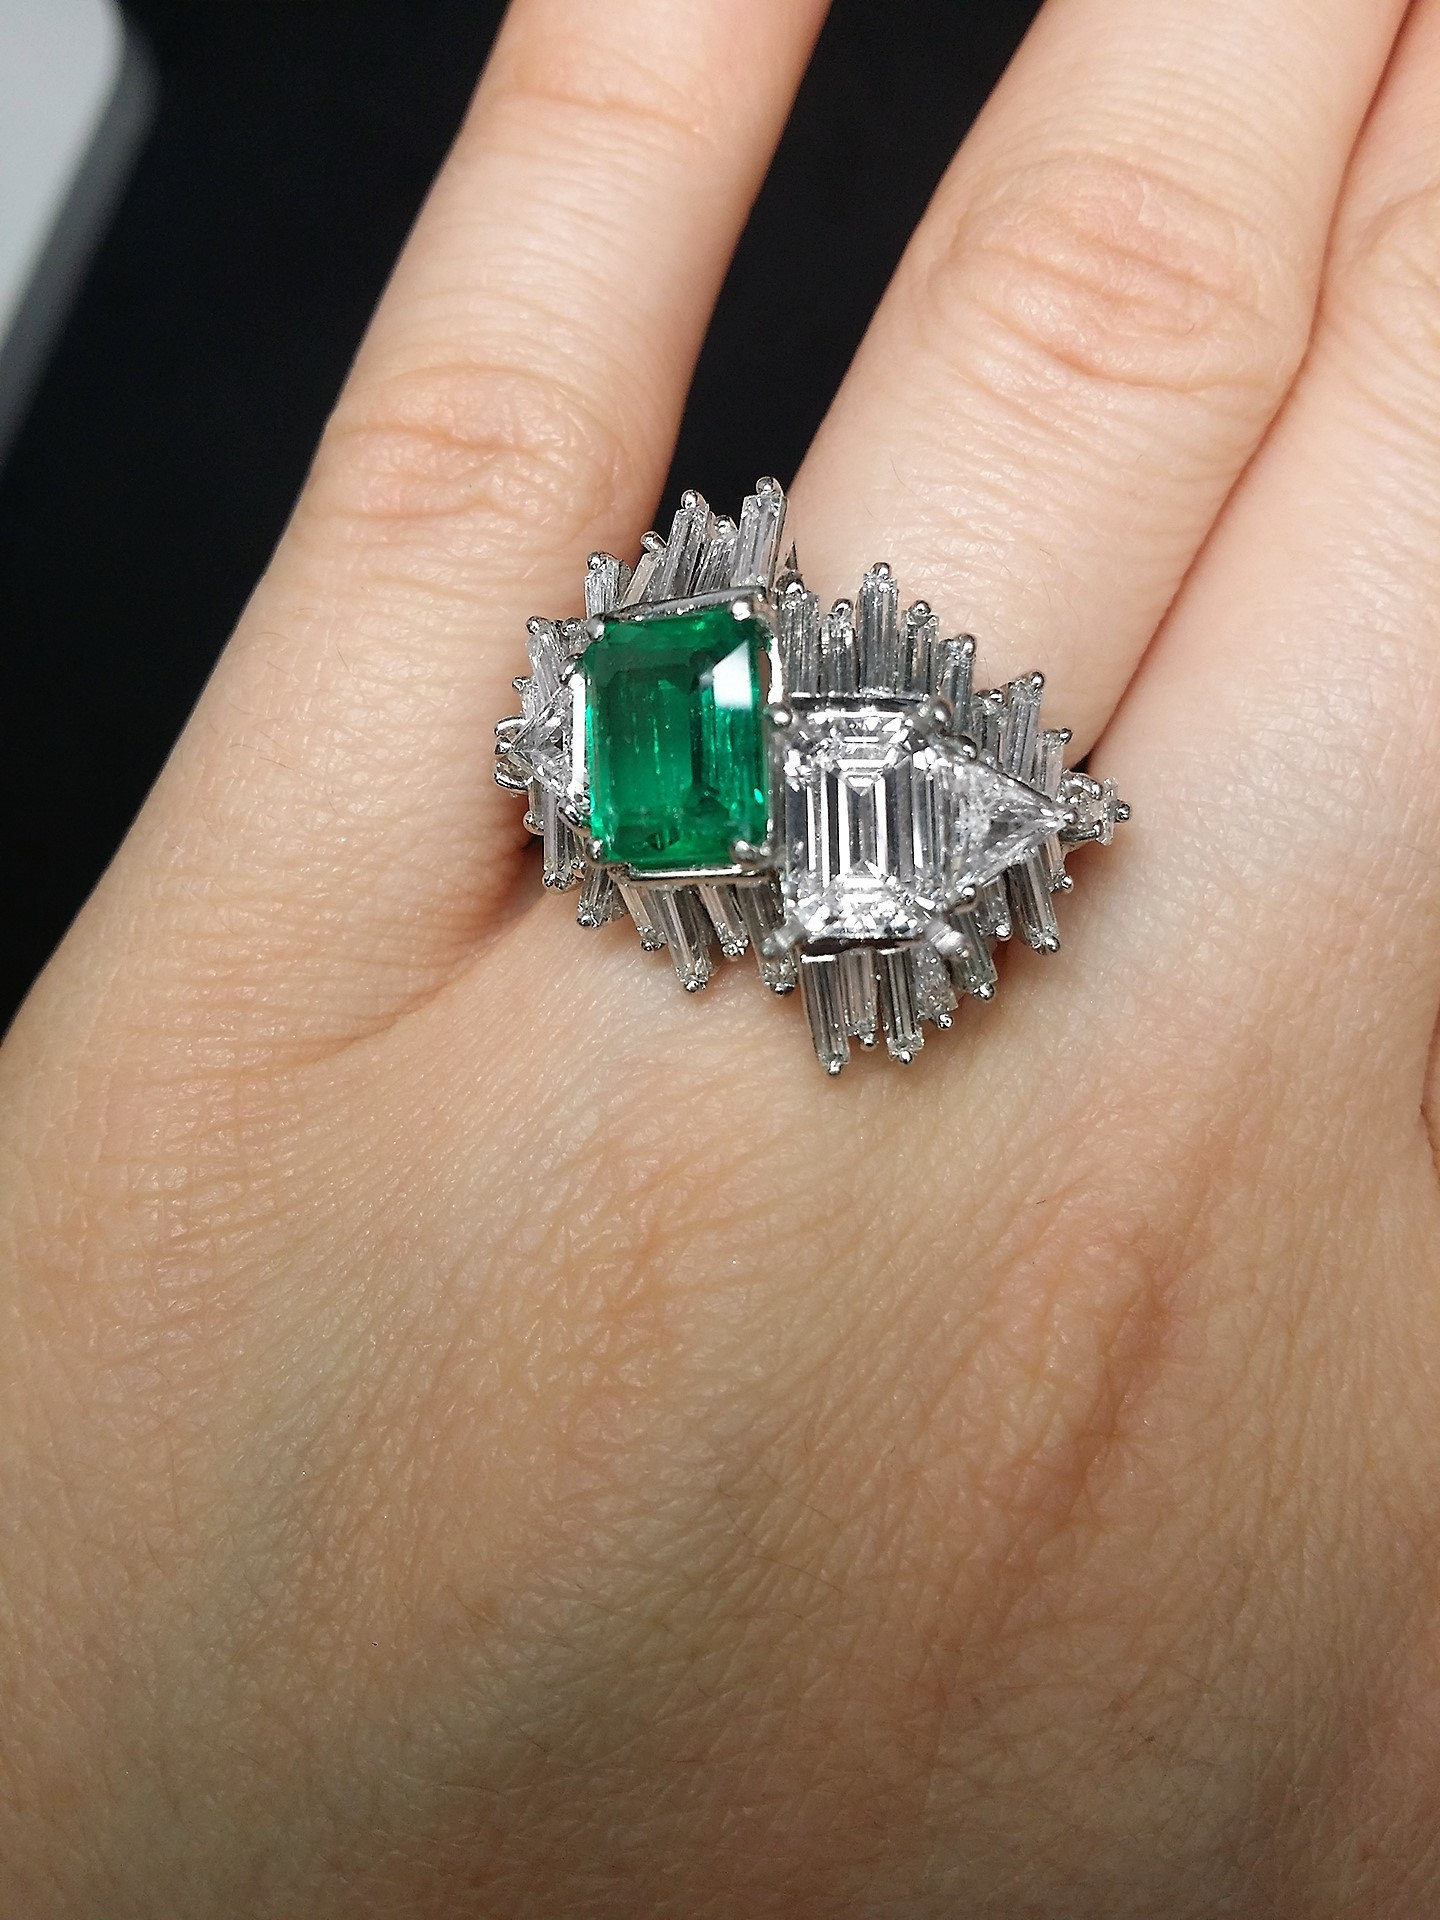 Timeless and Unique Antique GIA Ring with Green Colombian Emerald